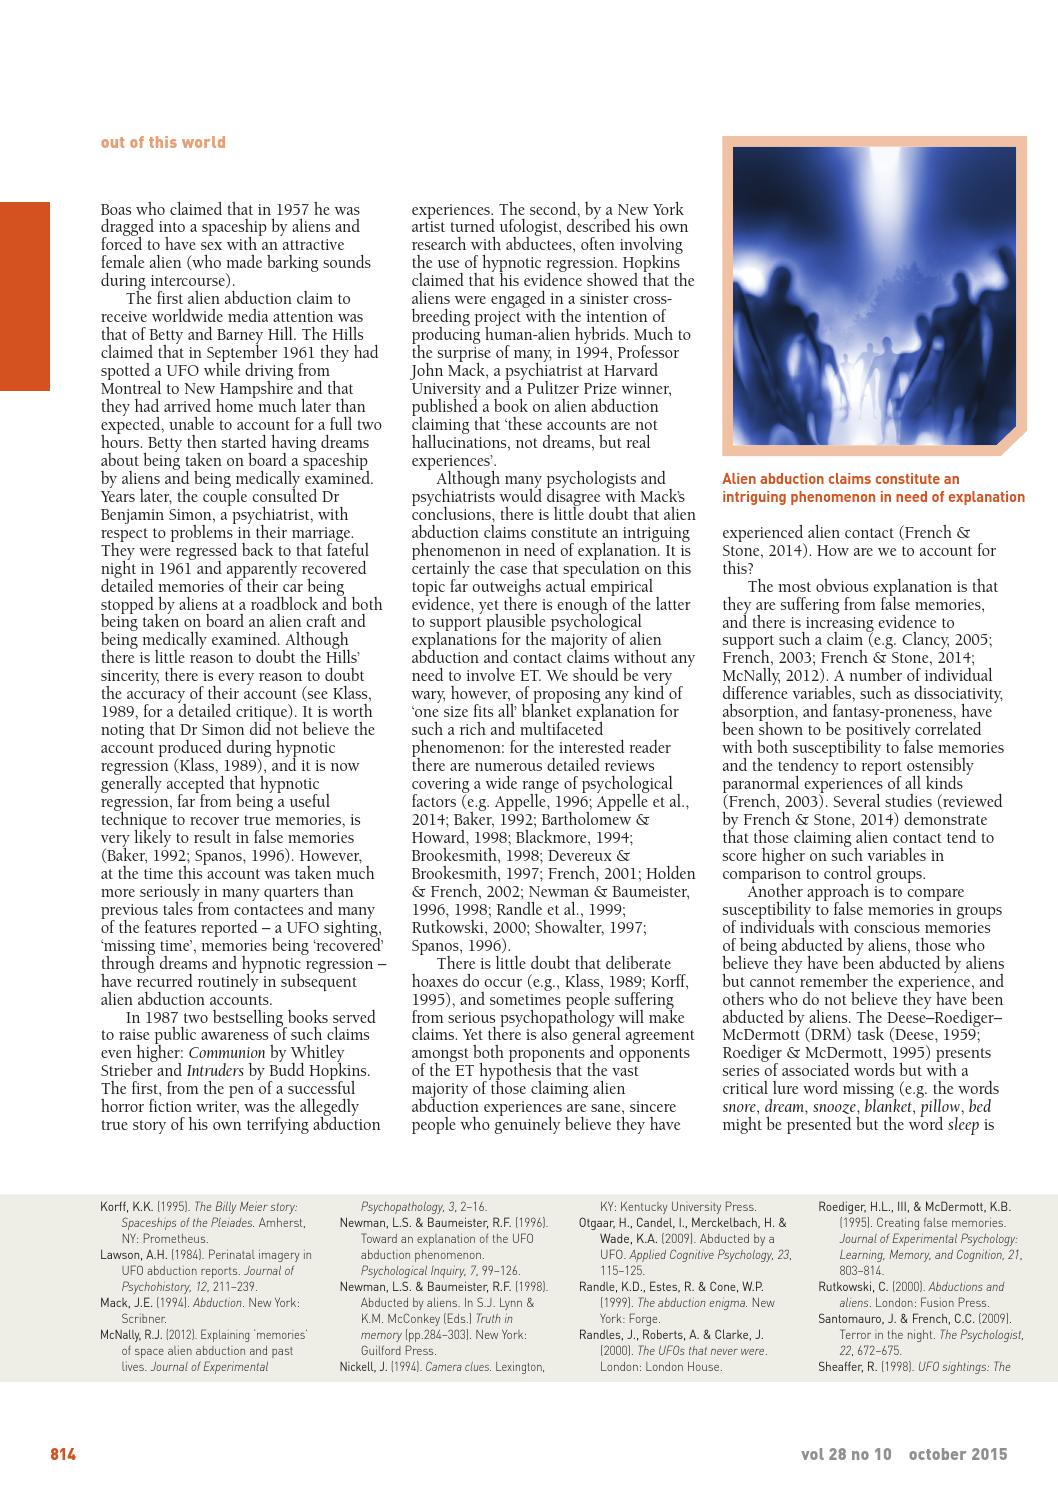 The Psychologist October 2015 by The British Psychological